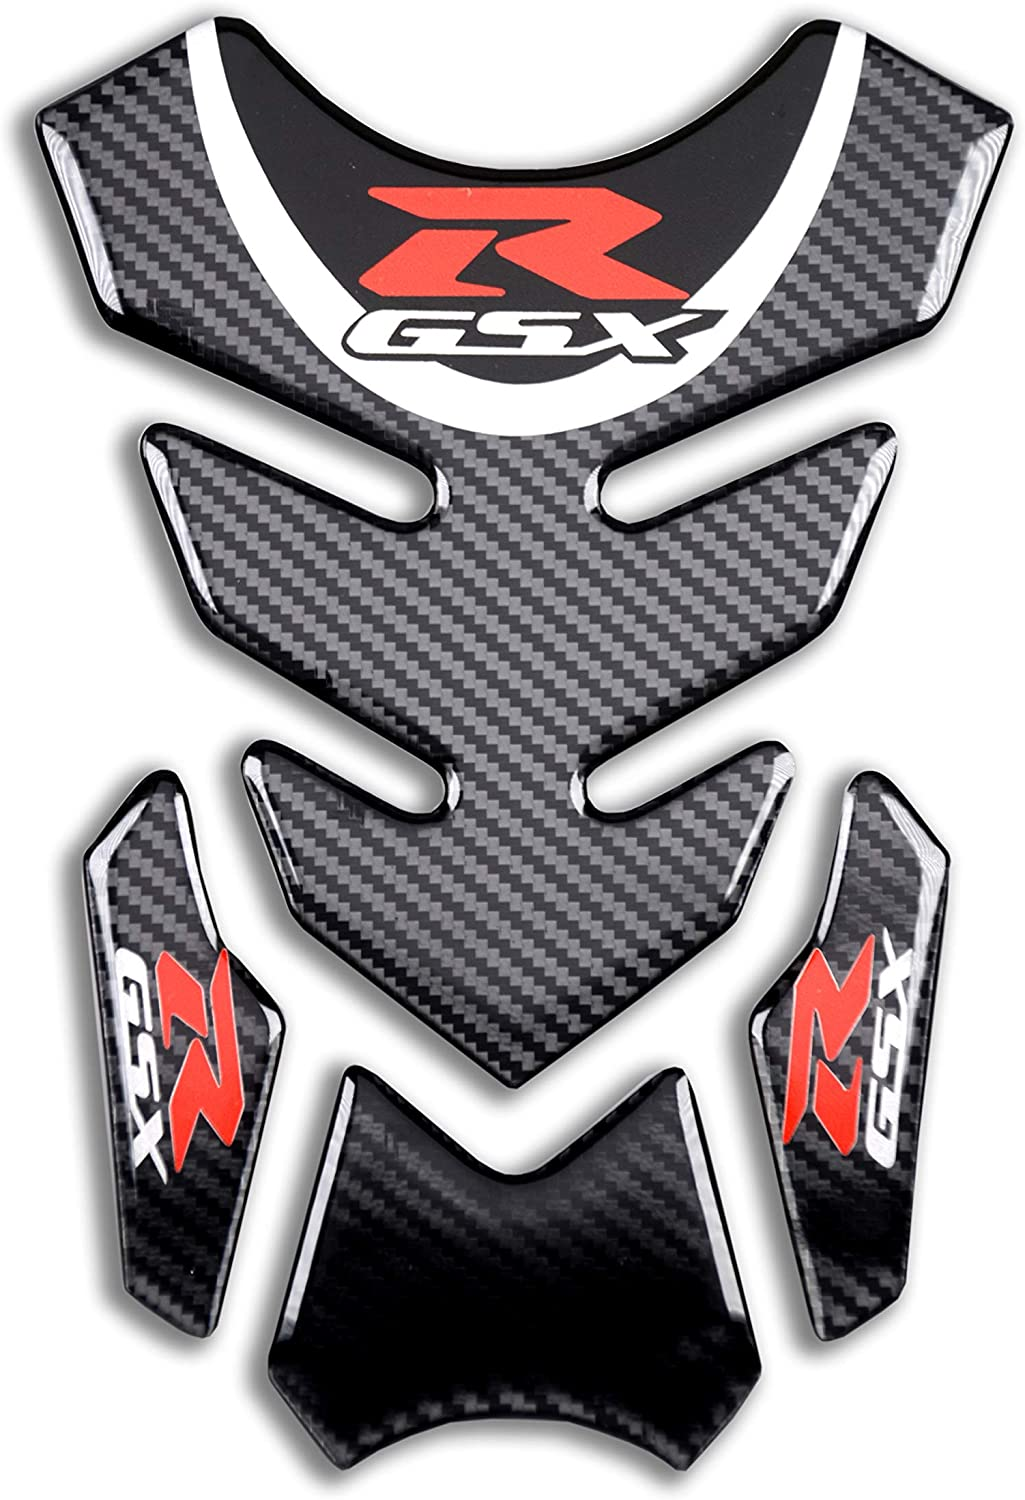 REVSOSTAR Real Carbon Look Motorcycle Reflective Sticker, Vinyl Decal Emblem Protection, Gas Tank Pad for Gixxer GSXR 600 750 2006-2016 / GSXR1000 2007-2008 GSXR1300 Hayabusa 2008-2016